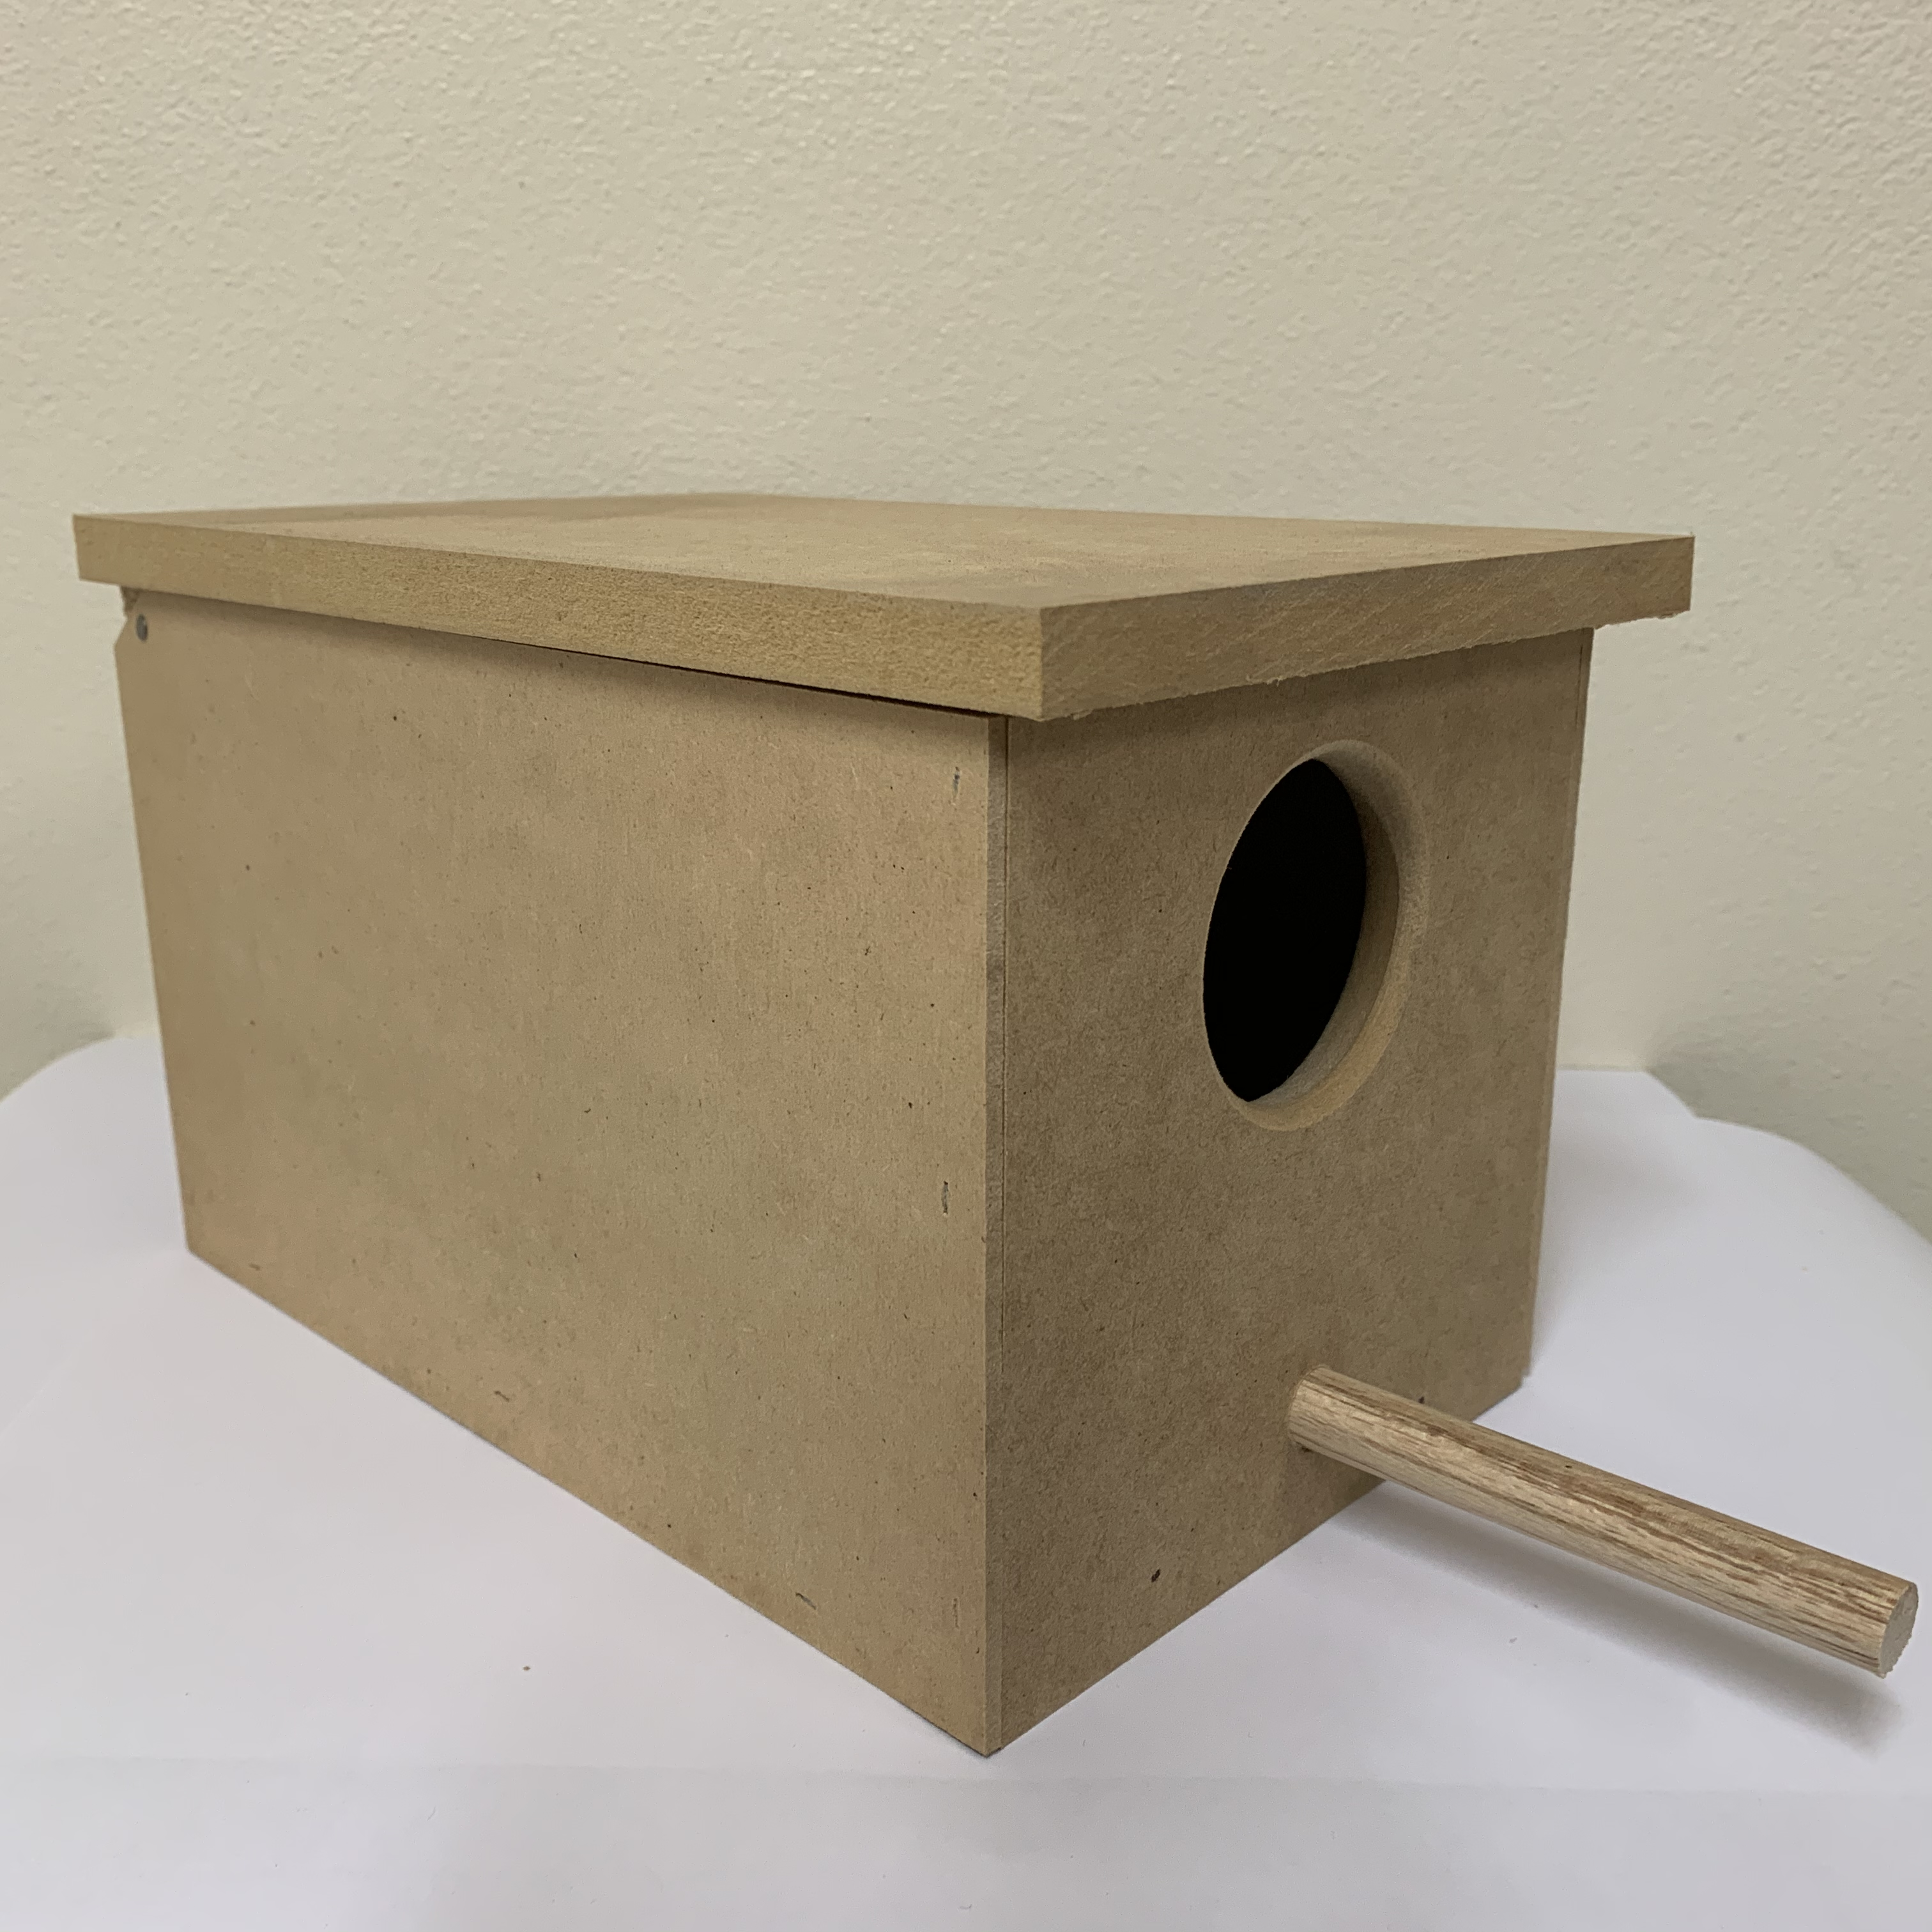 Wooden Budgie nest box w perch